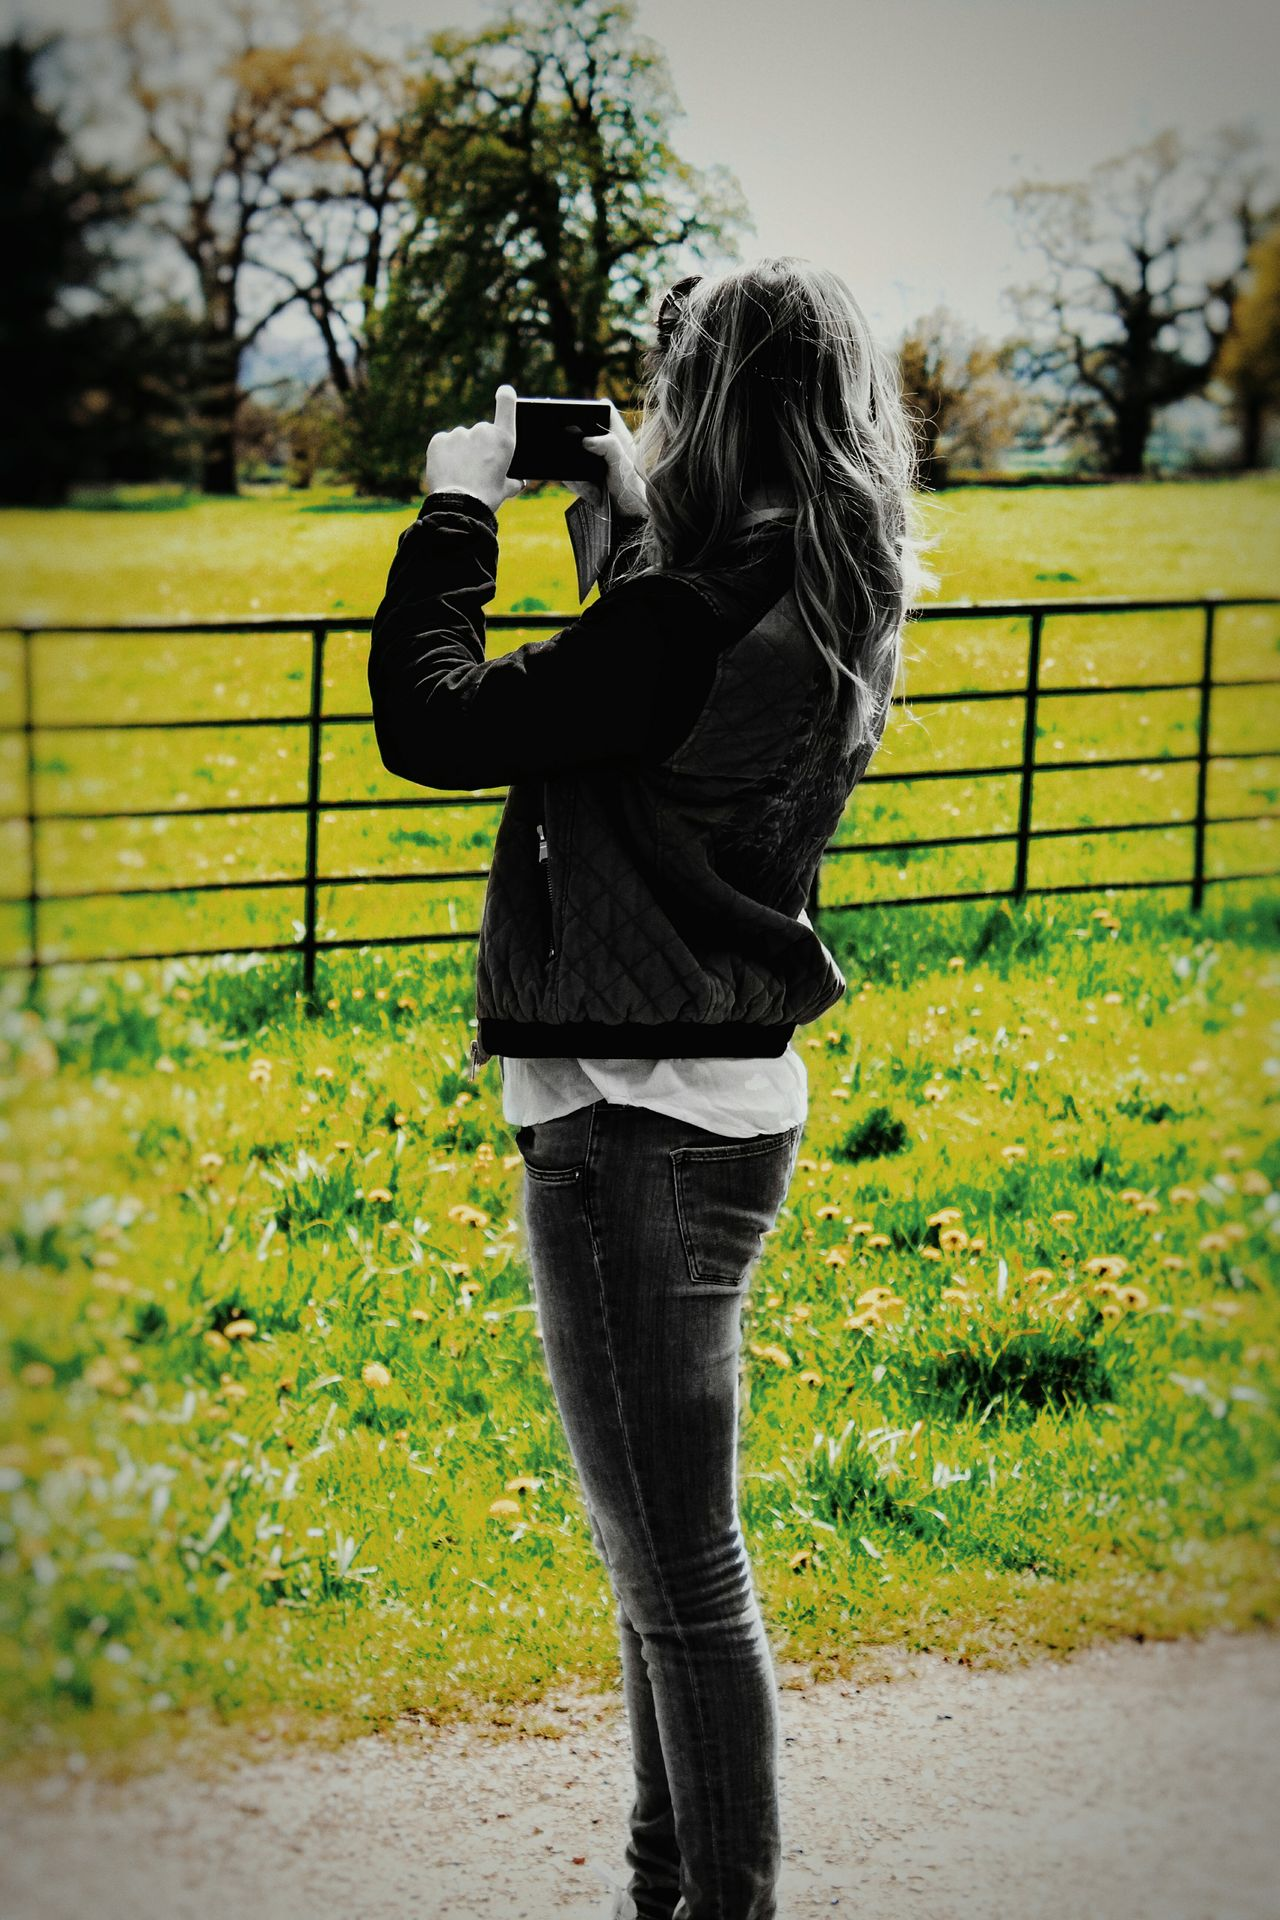 One Woman Only Day One Person Only Women Standing One Young Woman Only Outdoors BYOPaper! The Street Photographer - 2017 EyeEm Awards The Photojournalist - 2017 EyeEm Awards England Tourist Tourism Visit Phone Photo People Beauty In Nature Capture Capture The Moment Photography Field Trees Black & White Black And White And Color The Great Outdoors - 2017 EyeEm Awards